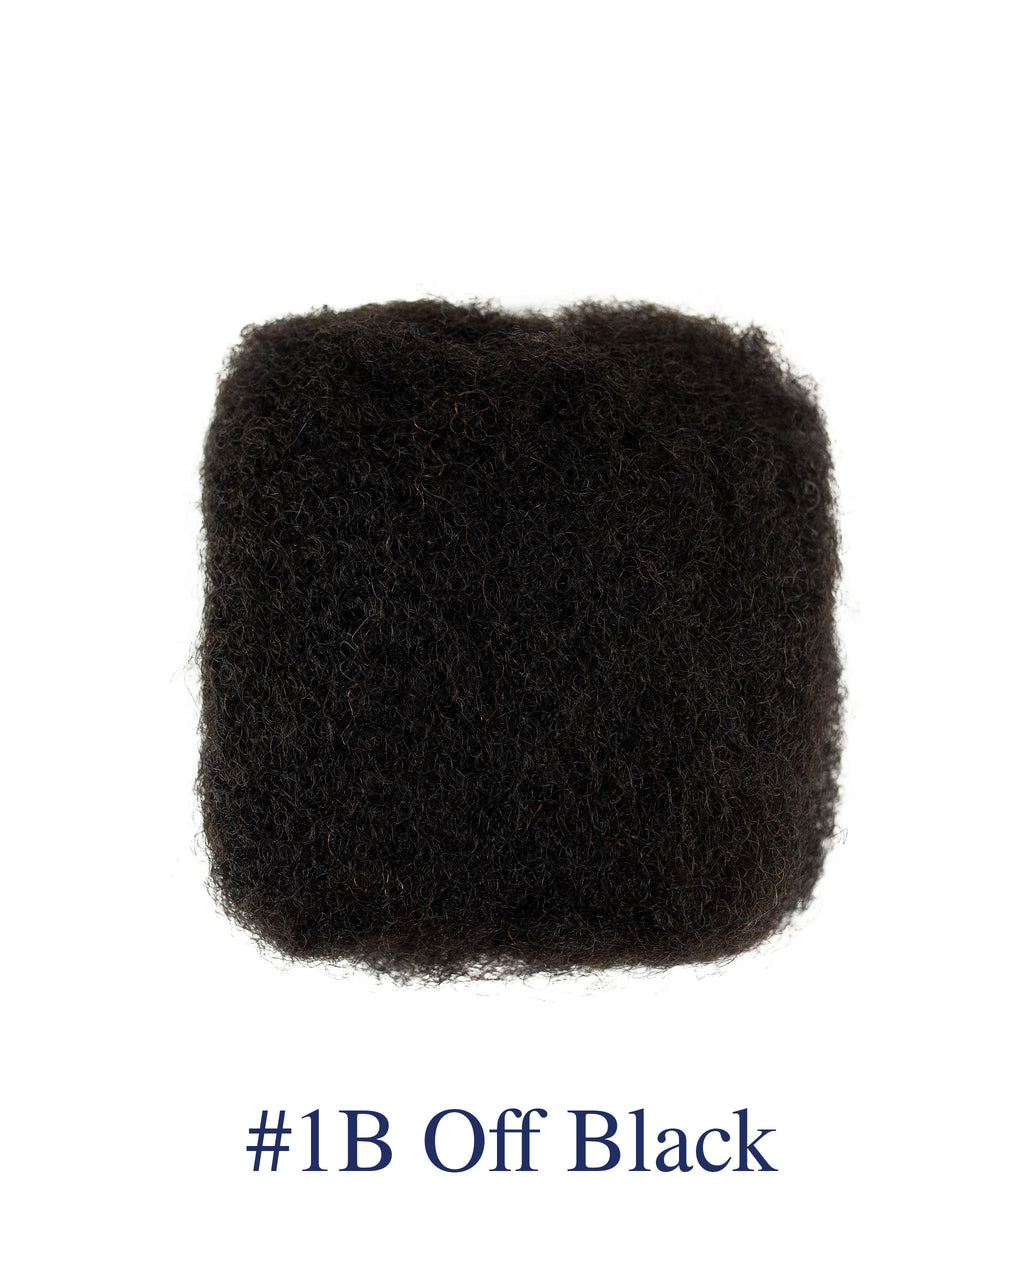 8' Off Black (#1B) Afro Kinky Human Hair